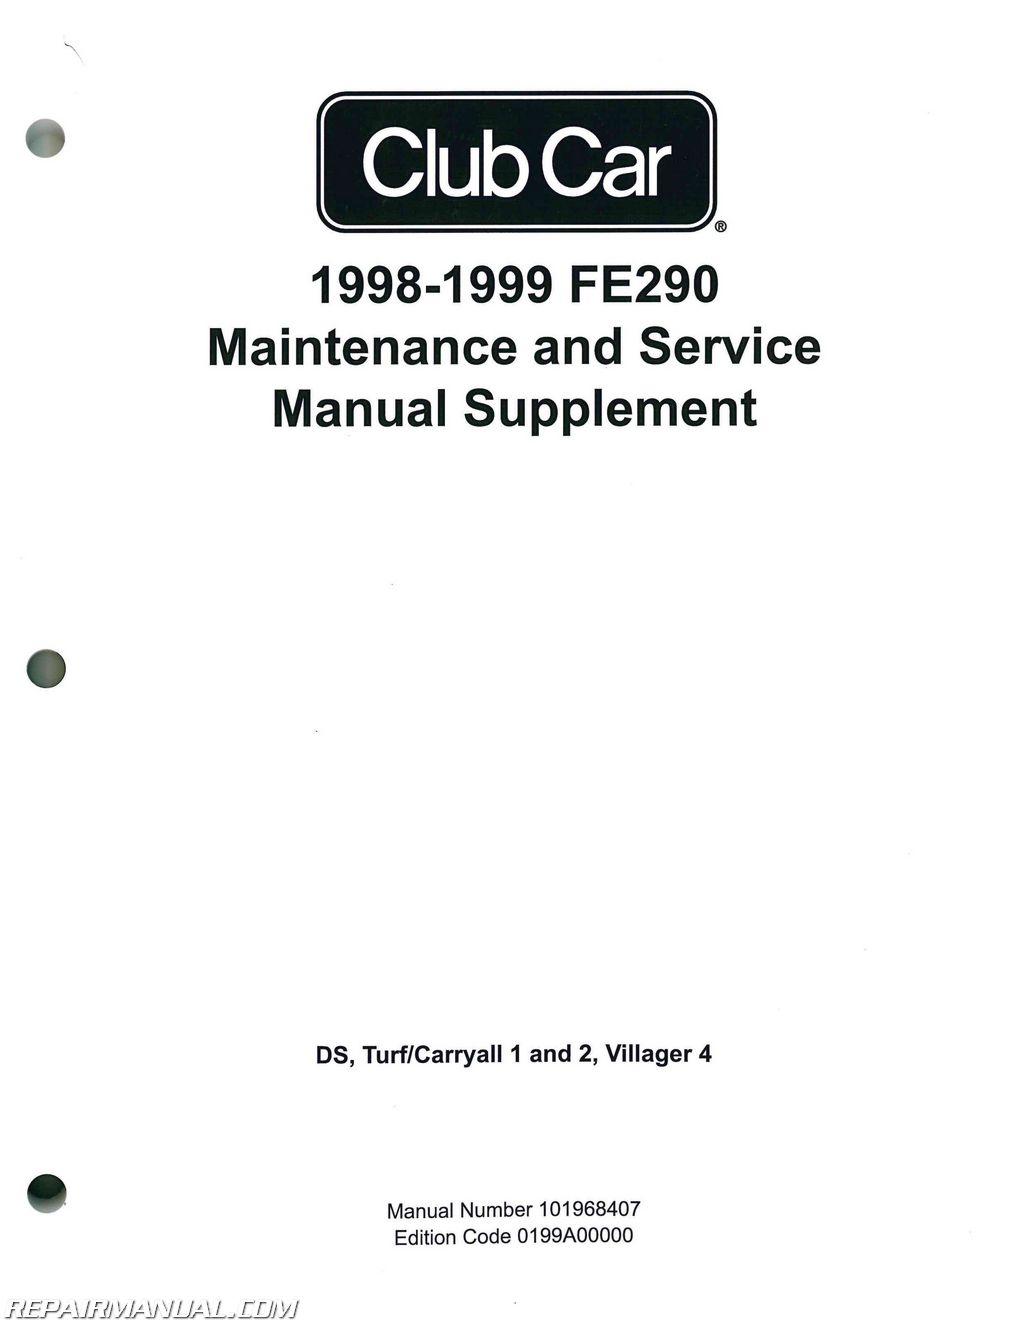 1998-1999 Club Car FE290 Maintenance And Service Manual